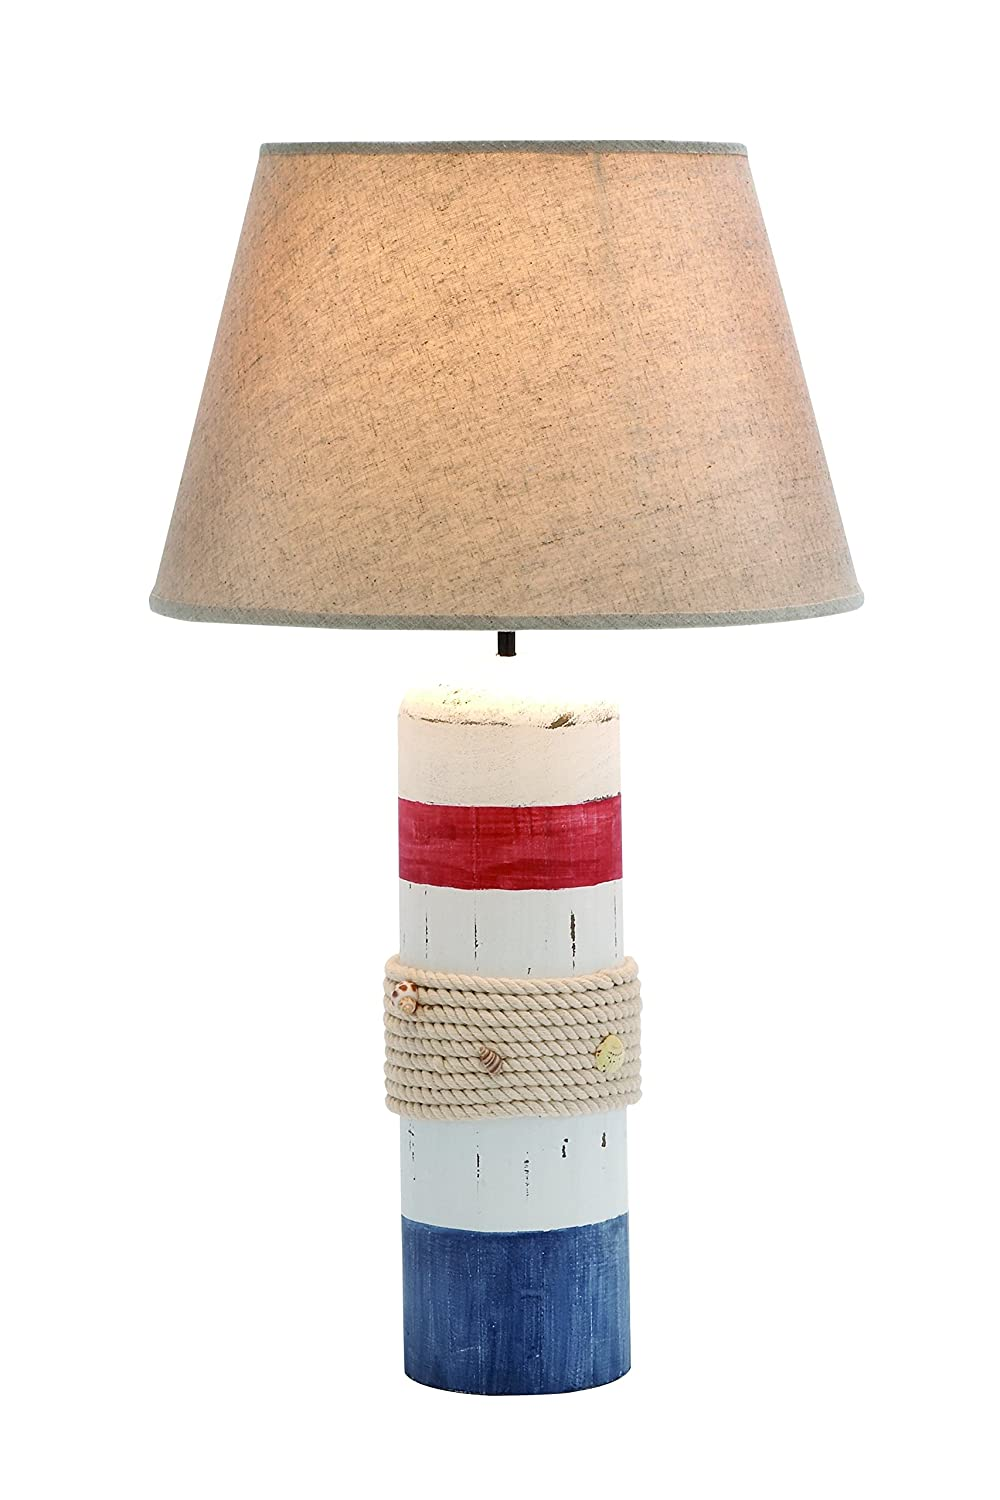 Wonderful Amazon.com: Benzara Stylish White Wooden Buoy Table Lamp With Red And Blue  Band: Kitchen U0026 Dining